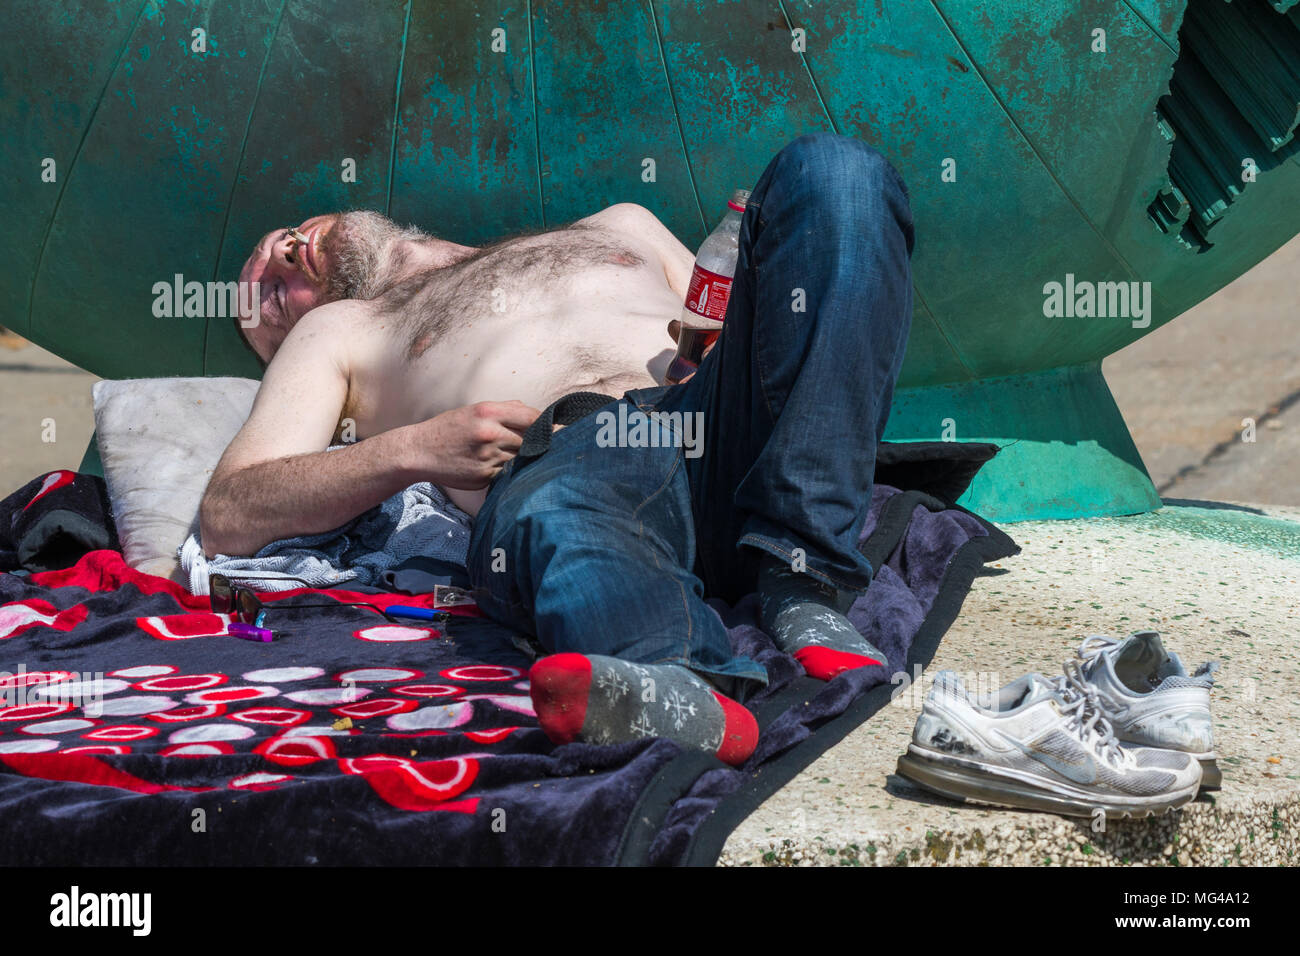 Man appearing to be homeless and sleeping rough in Brighton, East Sussex, England, UK. Homelessness UK. Down on luck. - Stock Image